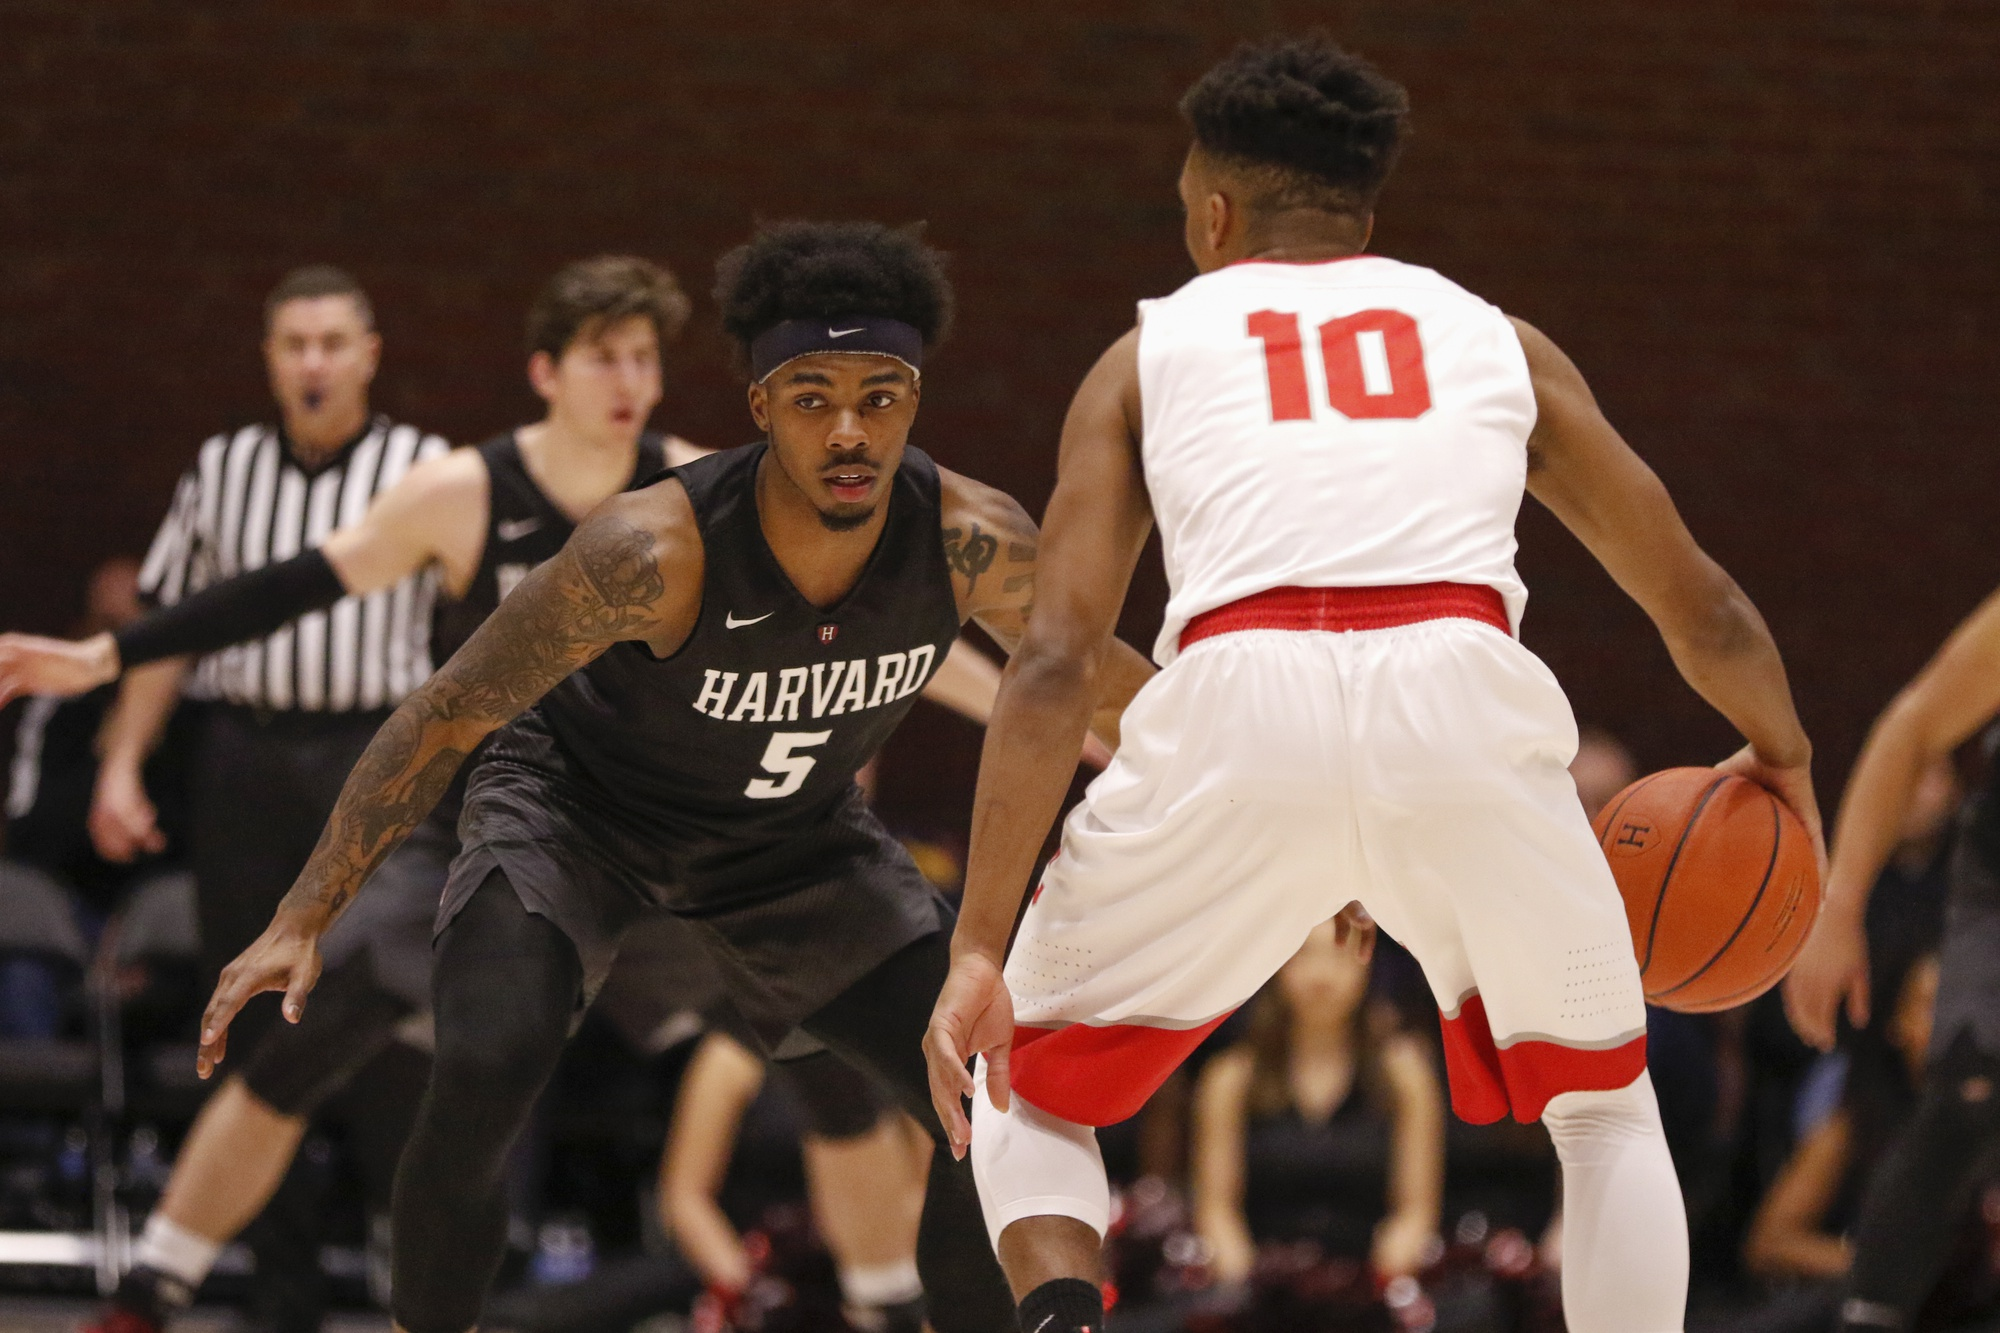 Sophomore guard Rio Haskett guards Matt Morgan in the first contest between Harvard and Cornell.